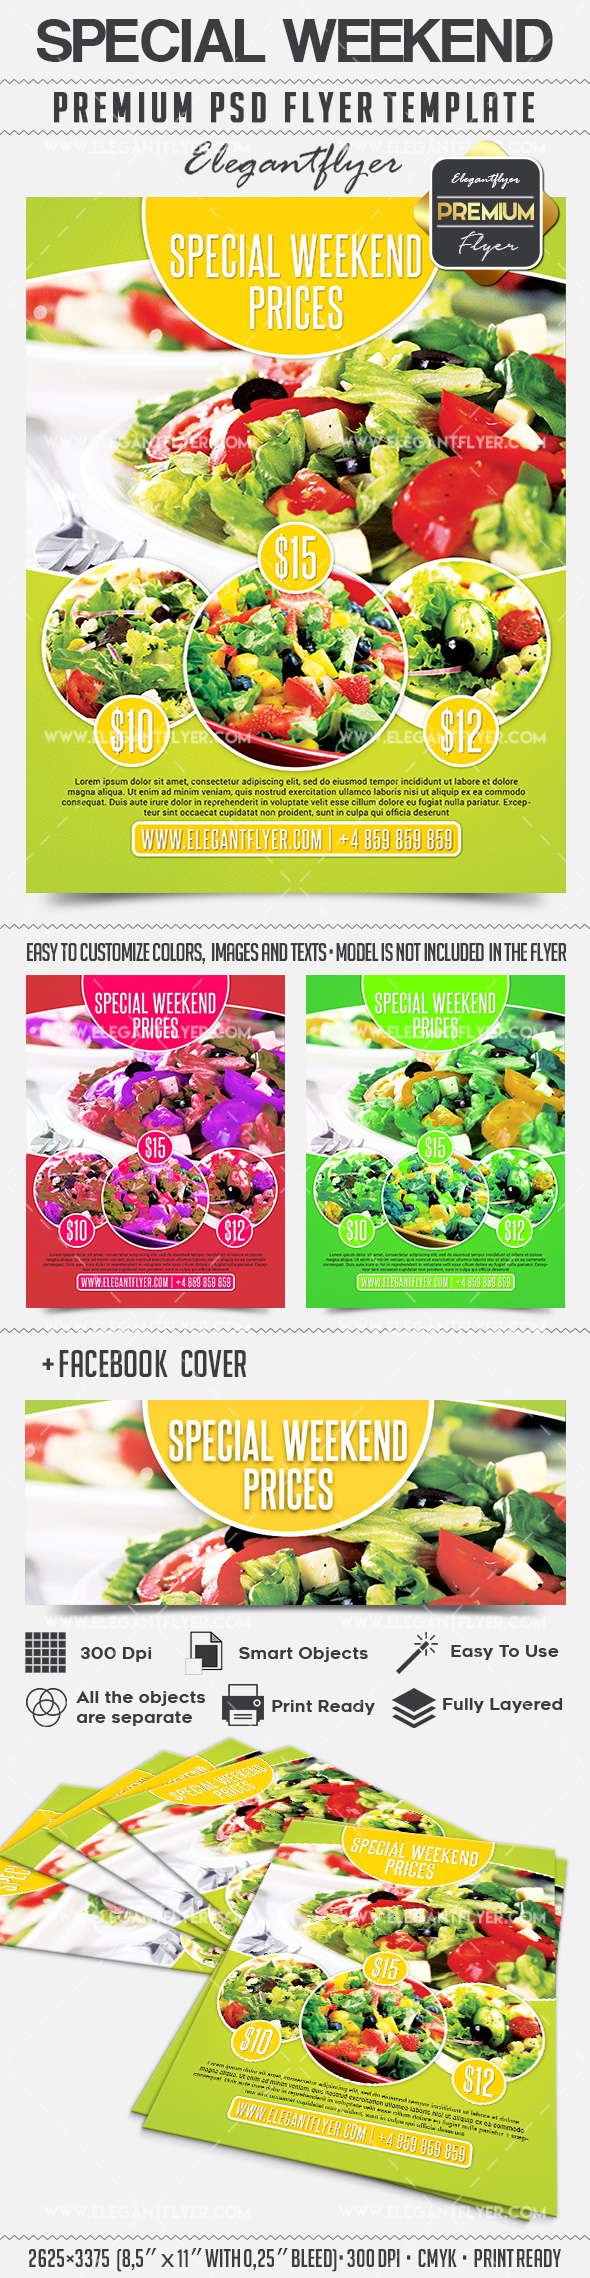 Special Weekend Offer – Flyer PSD Template + Facebook Cover